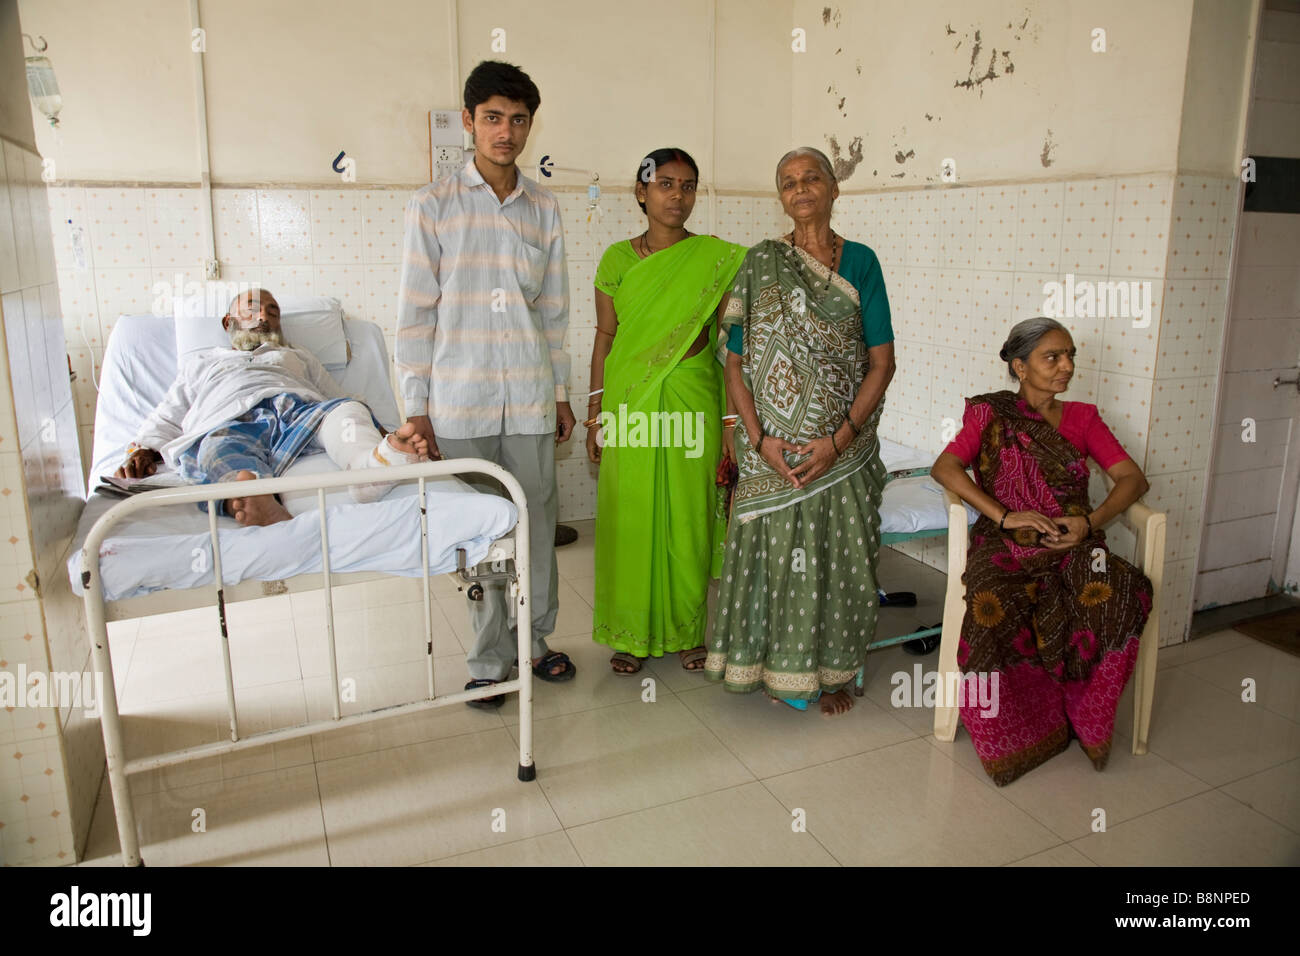 Hospital room with patient and family - Family Members With A Bed Ridden Patient In A General Ward Of The New Civil Hospital